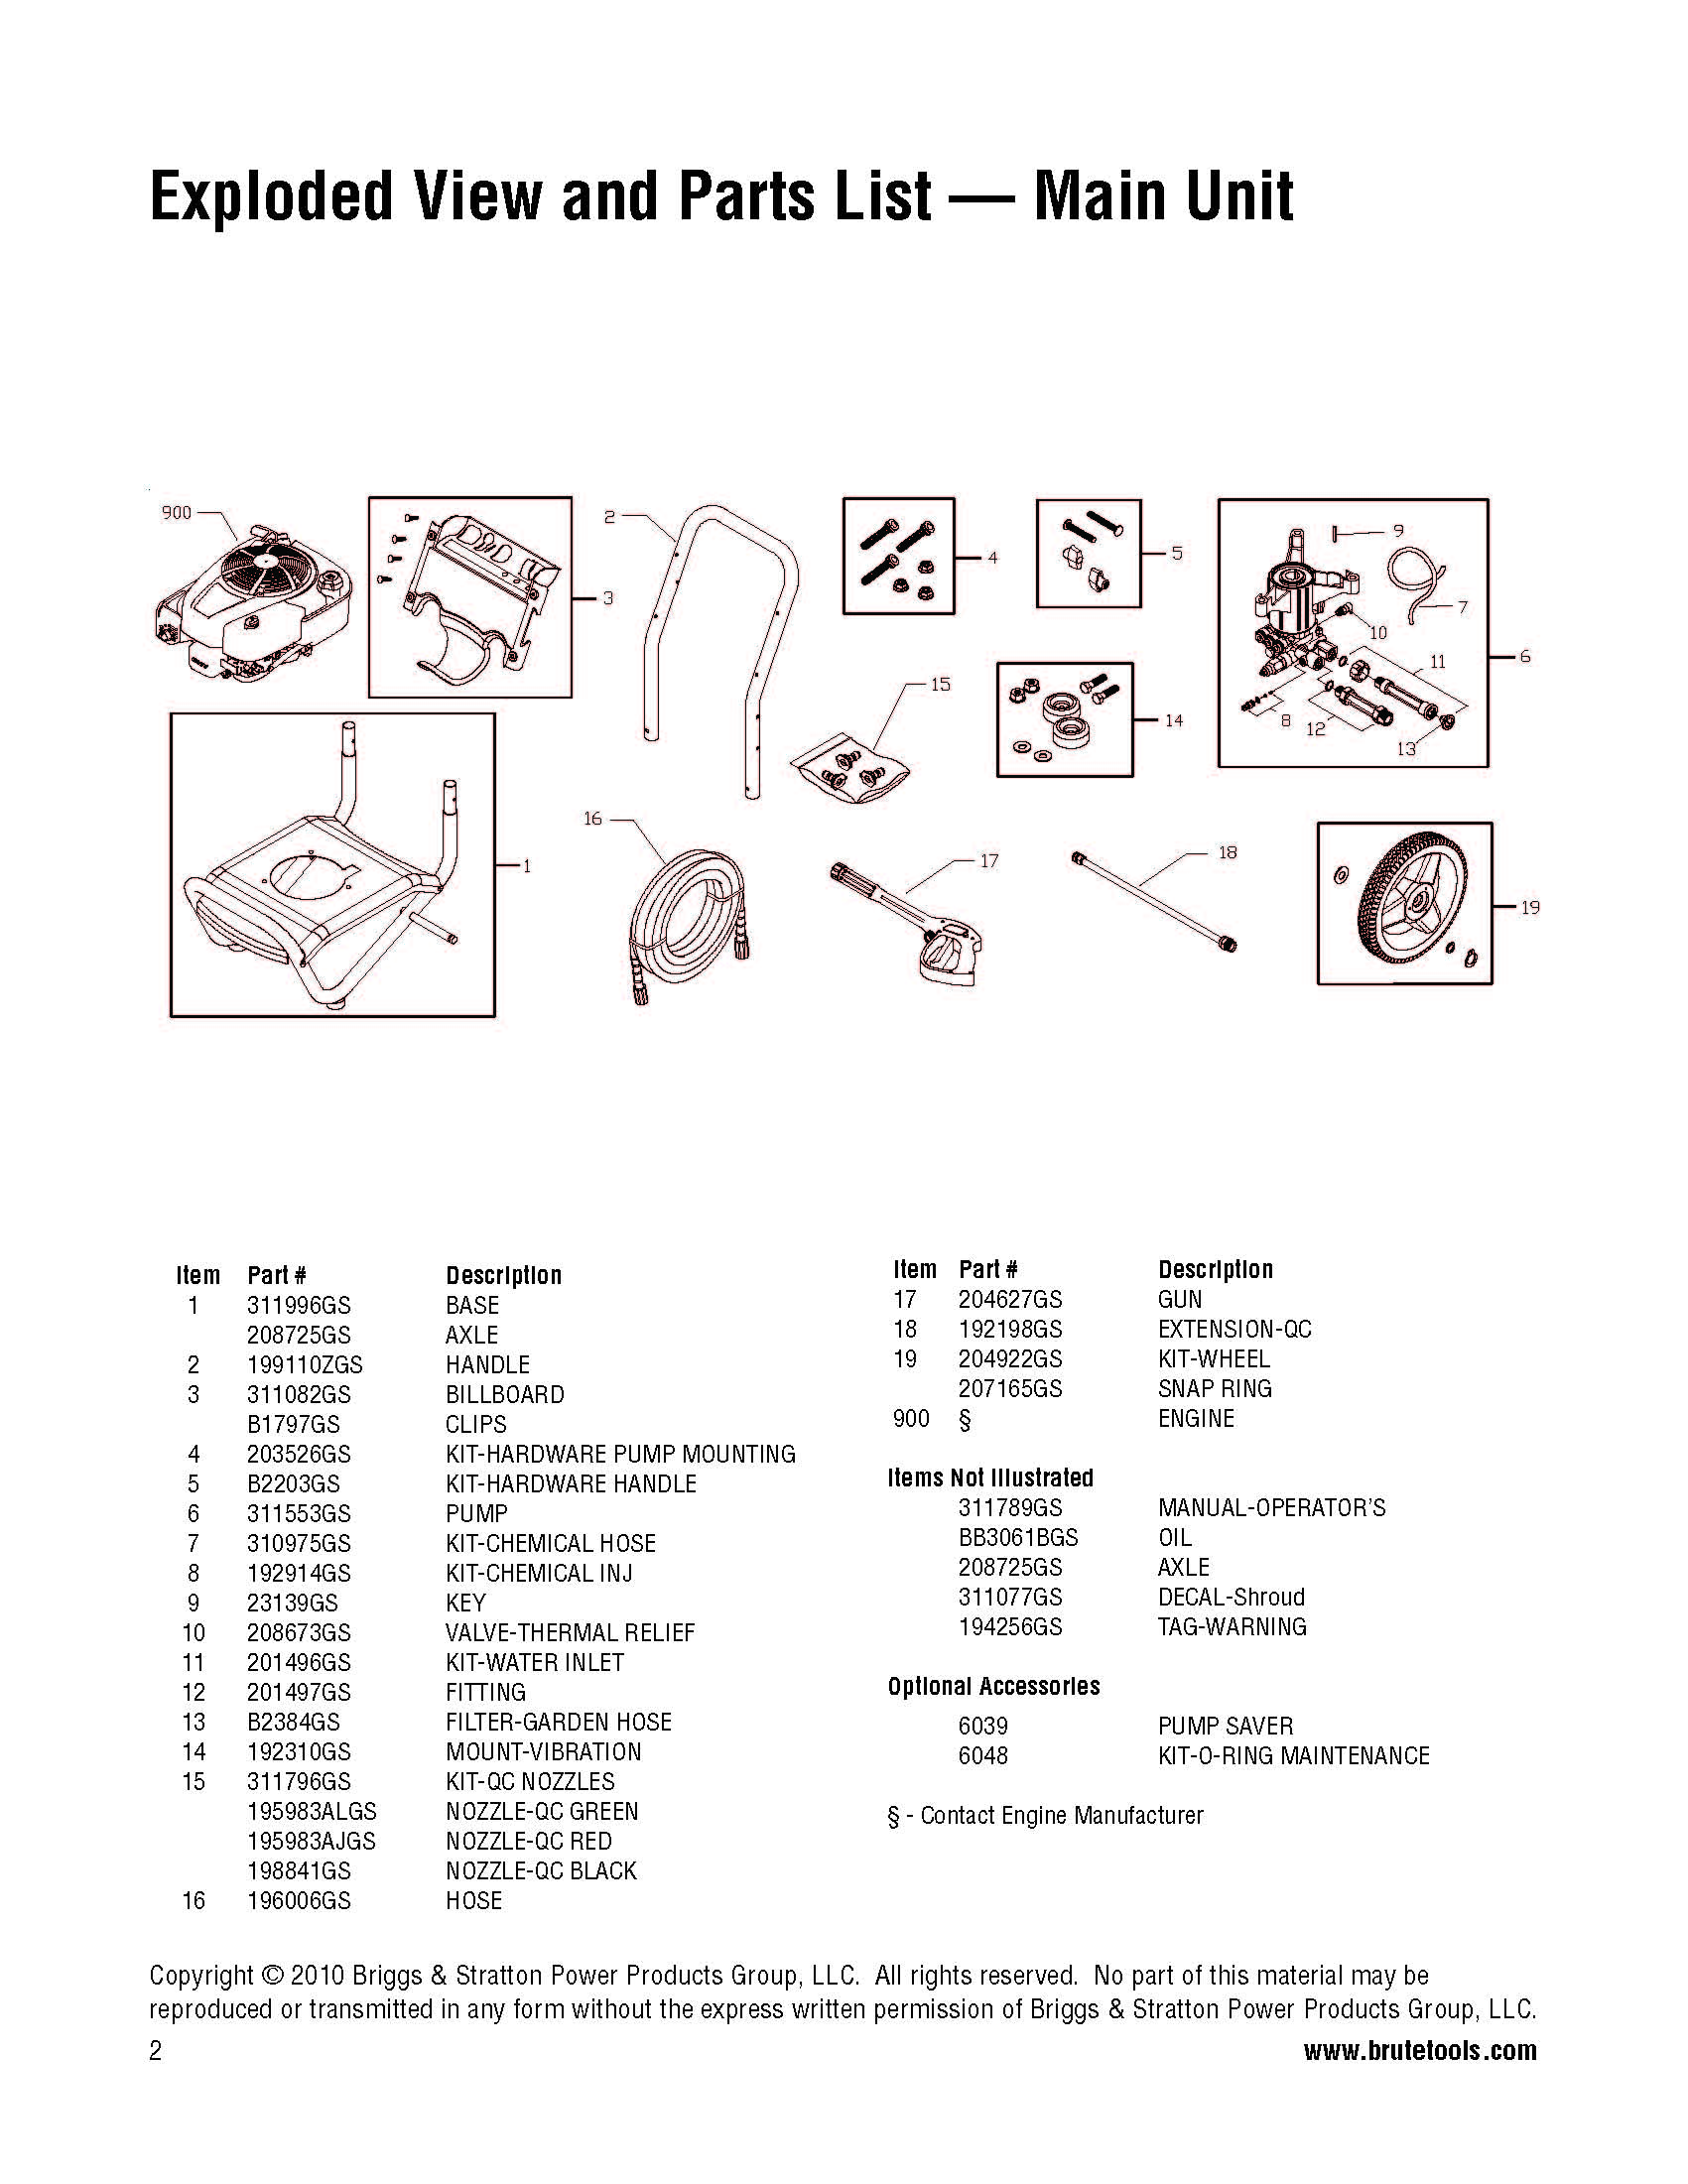 Bissell 47a2 Parts List And Diagram Ereplacementpartscom